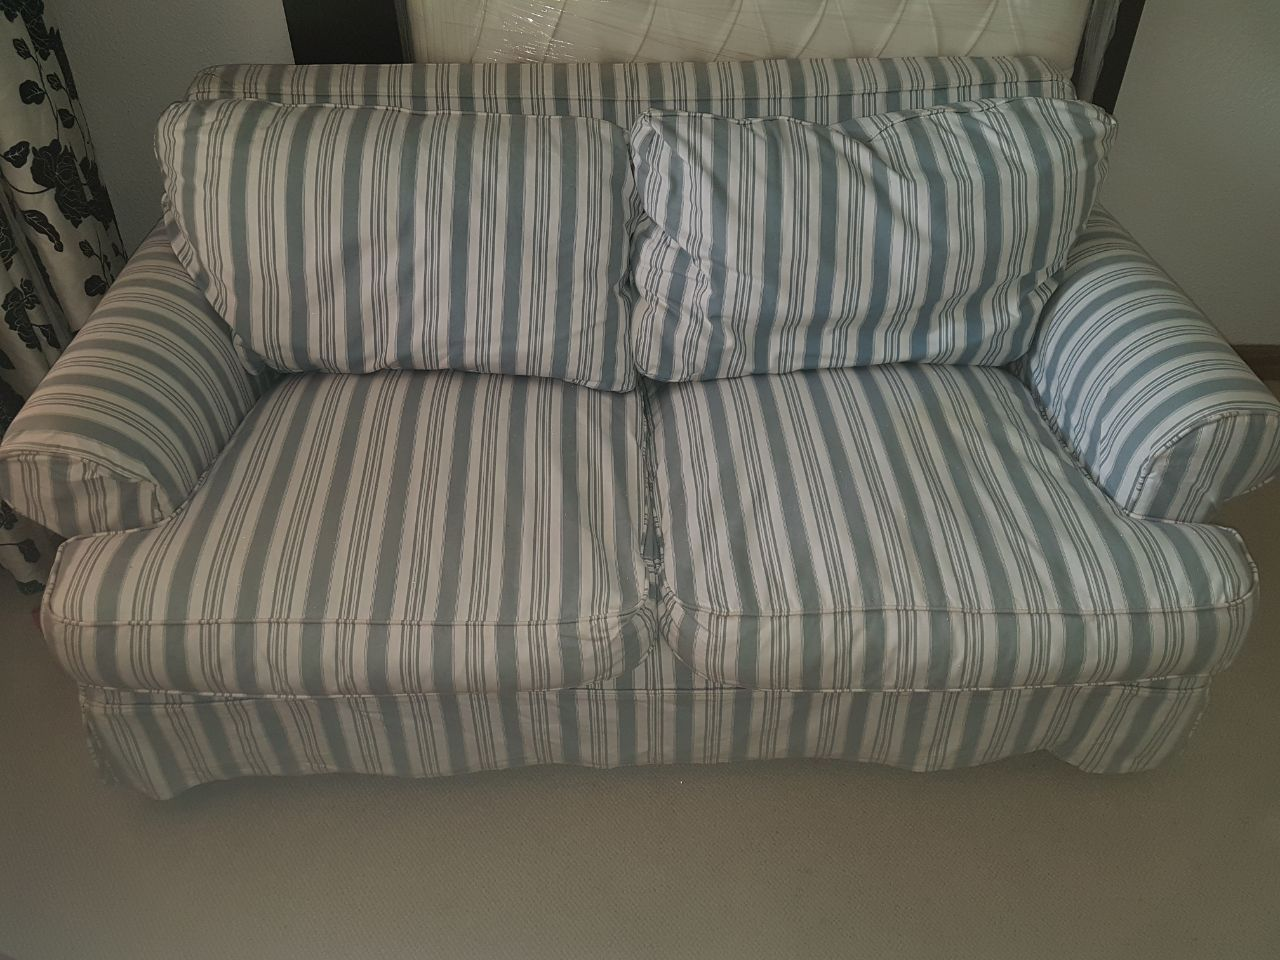 TWO SEATER COUCH - REMOVABLE COVER HARDLY USED